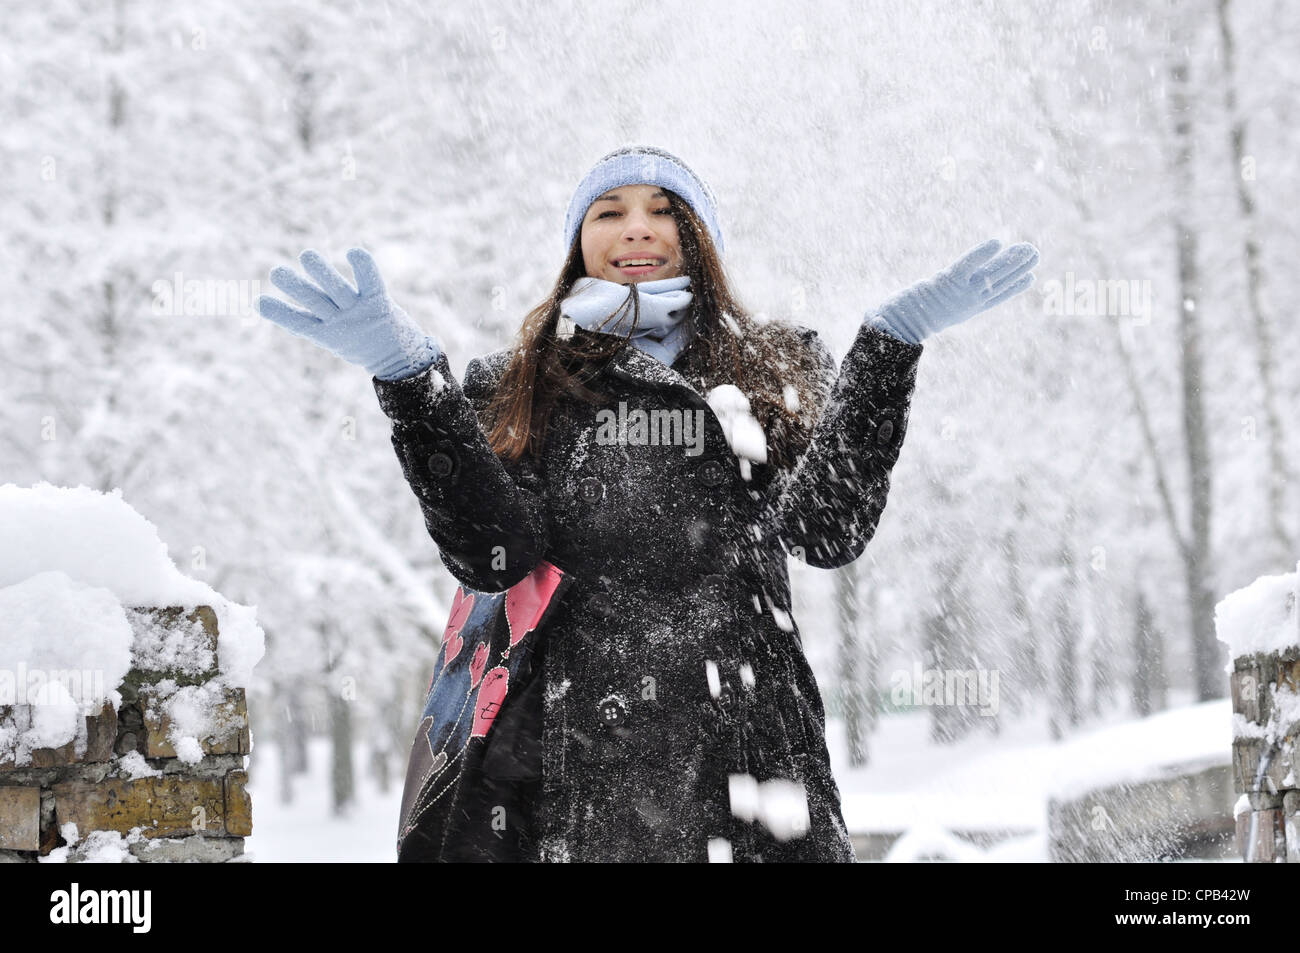 beautiful girl throwing snow in the air in winter park - Stock Image